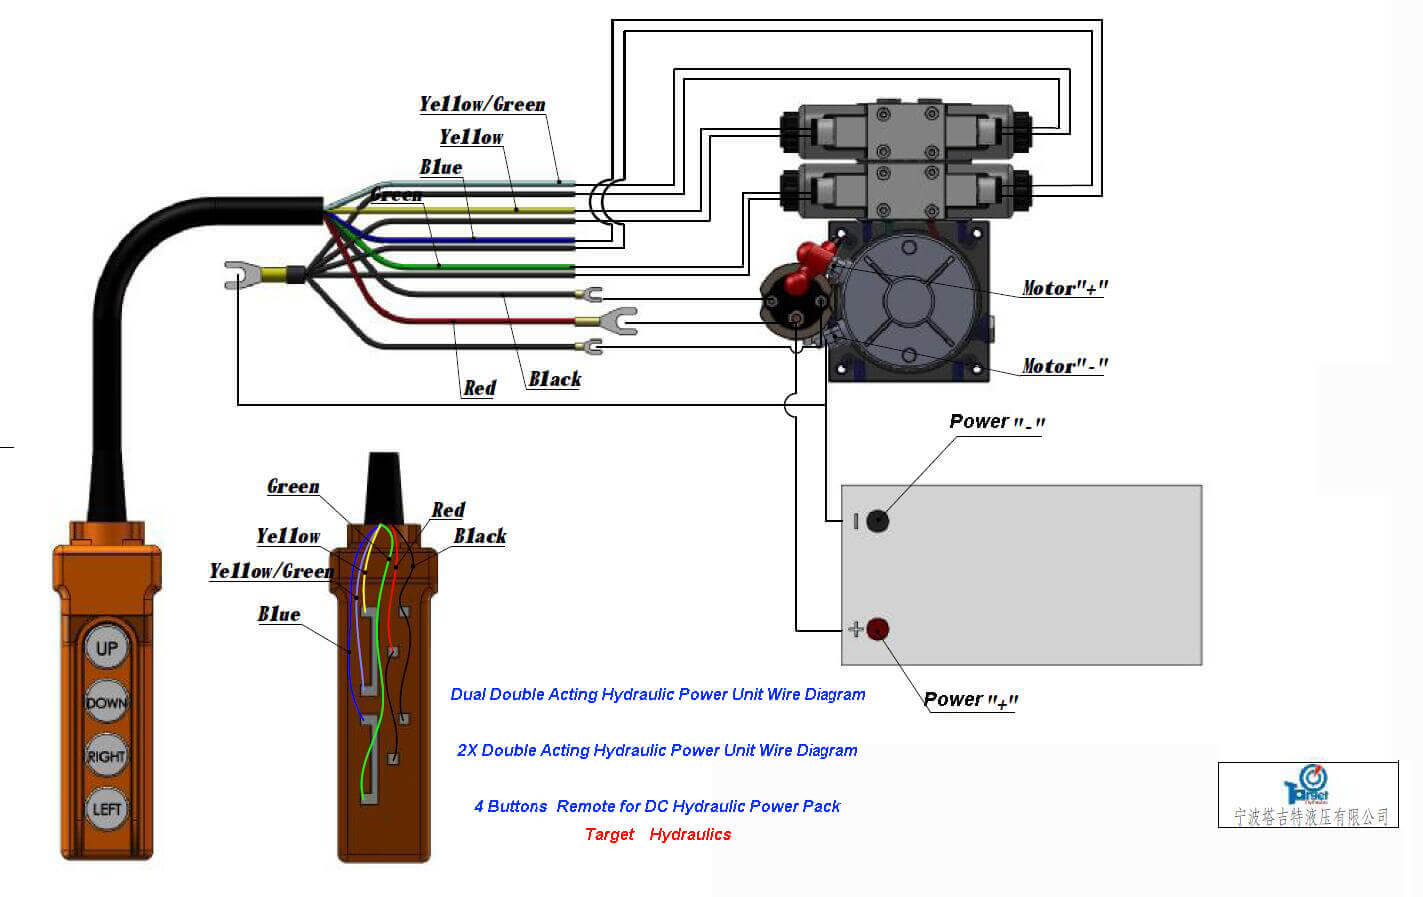 12 Volt Wiring Diagram For Winch Will Be A Thing 4 Solenoid How To Wire Hydraulic Power Pack Unit Design Control Wheeler